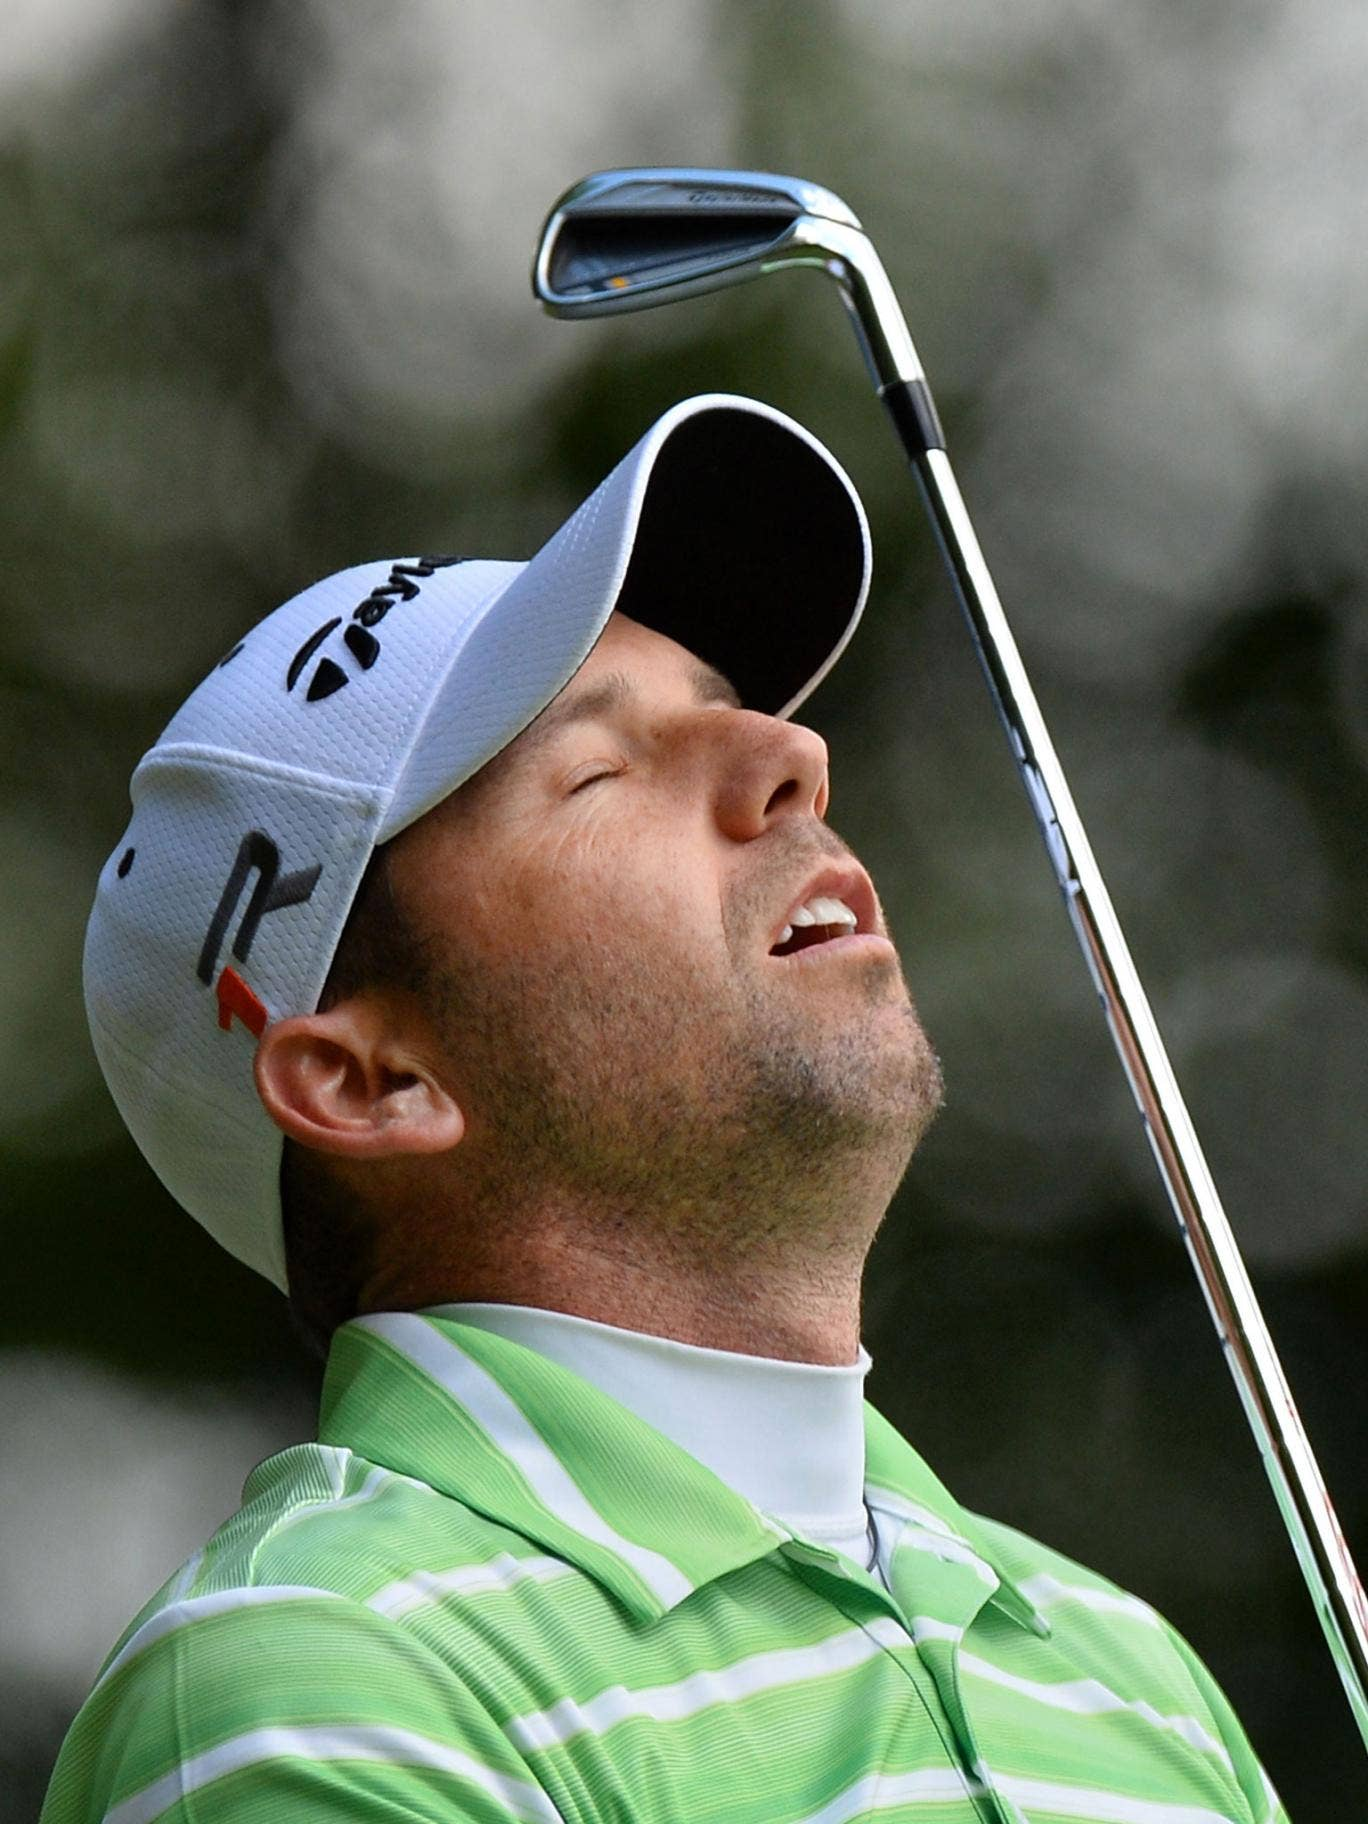 Sergio Garcia's comments could be used as a catalyst for change